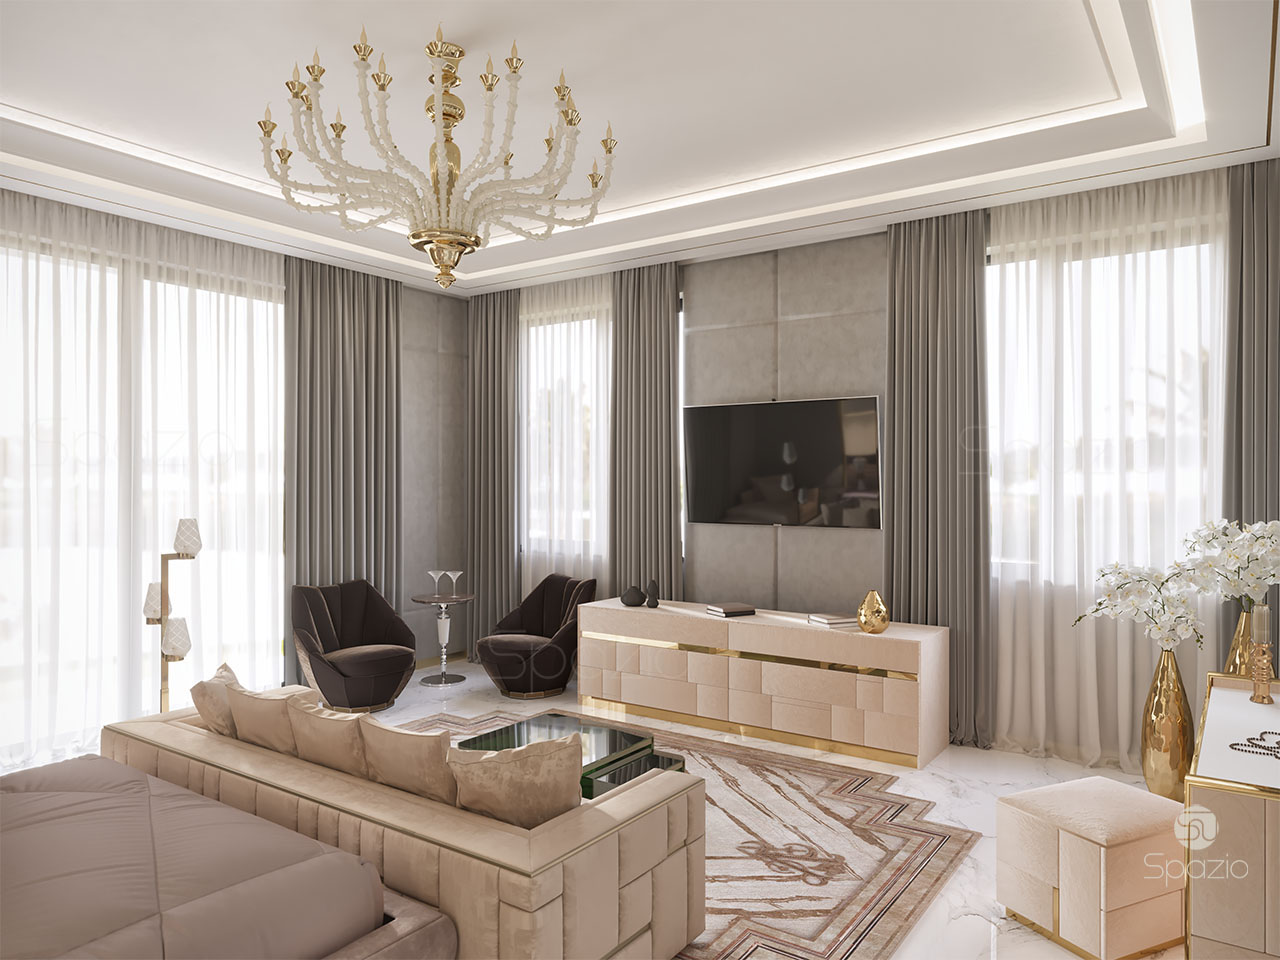 luxury master bedroom interior design in dubai 2019 spazio 18958 | luxury master bedroom design